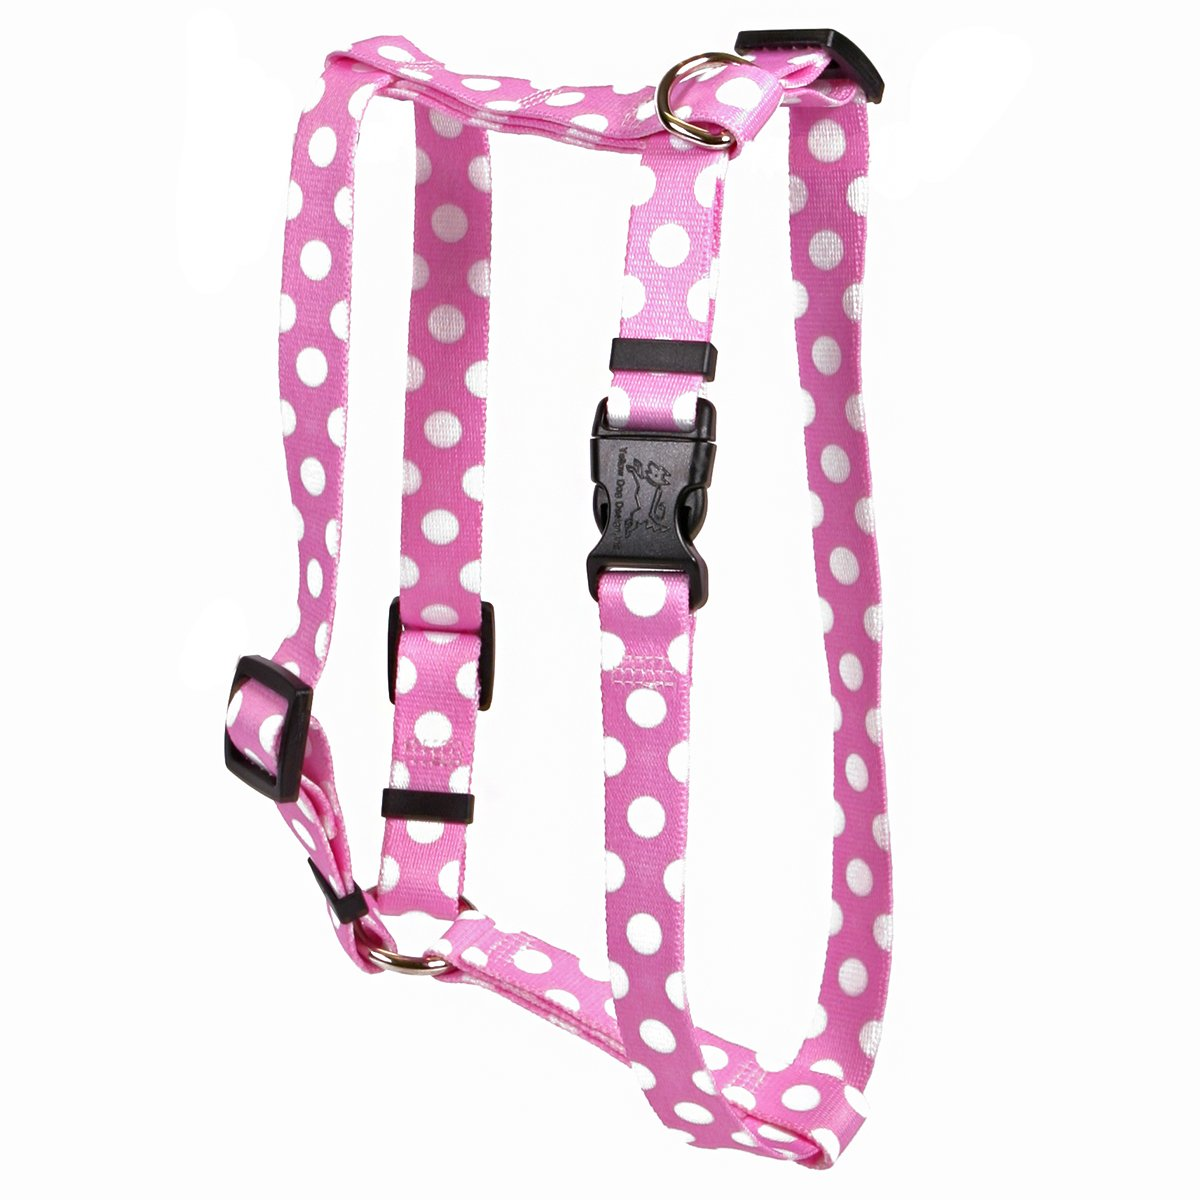 Yellow Dog Design Watermelon Polka Dot Roman Style H Dog Harness-Small/Medium-3/4 and fits Chest 14 to 20''